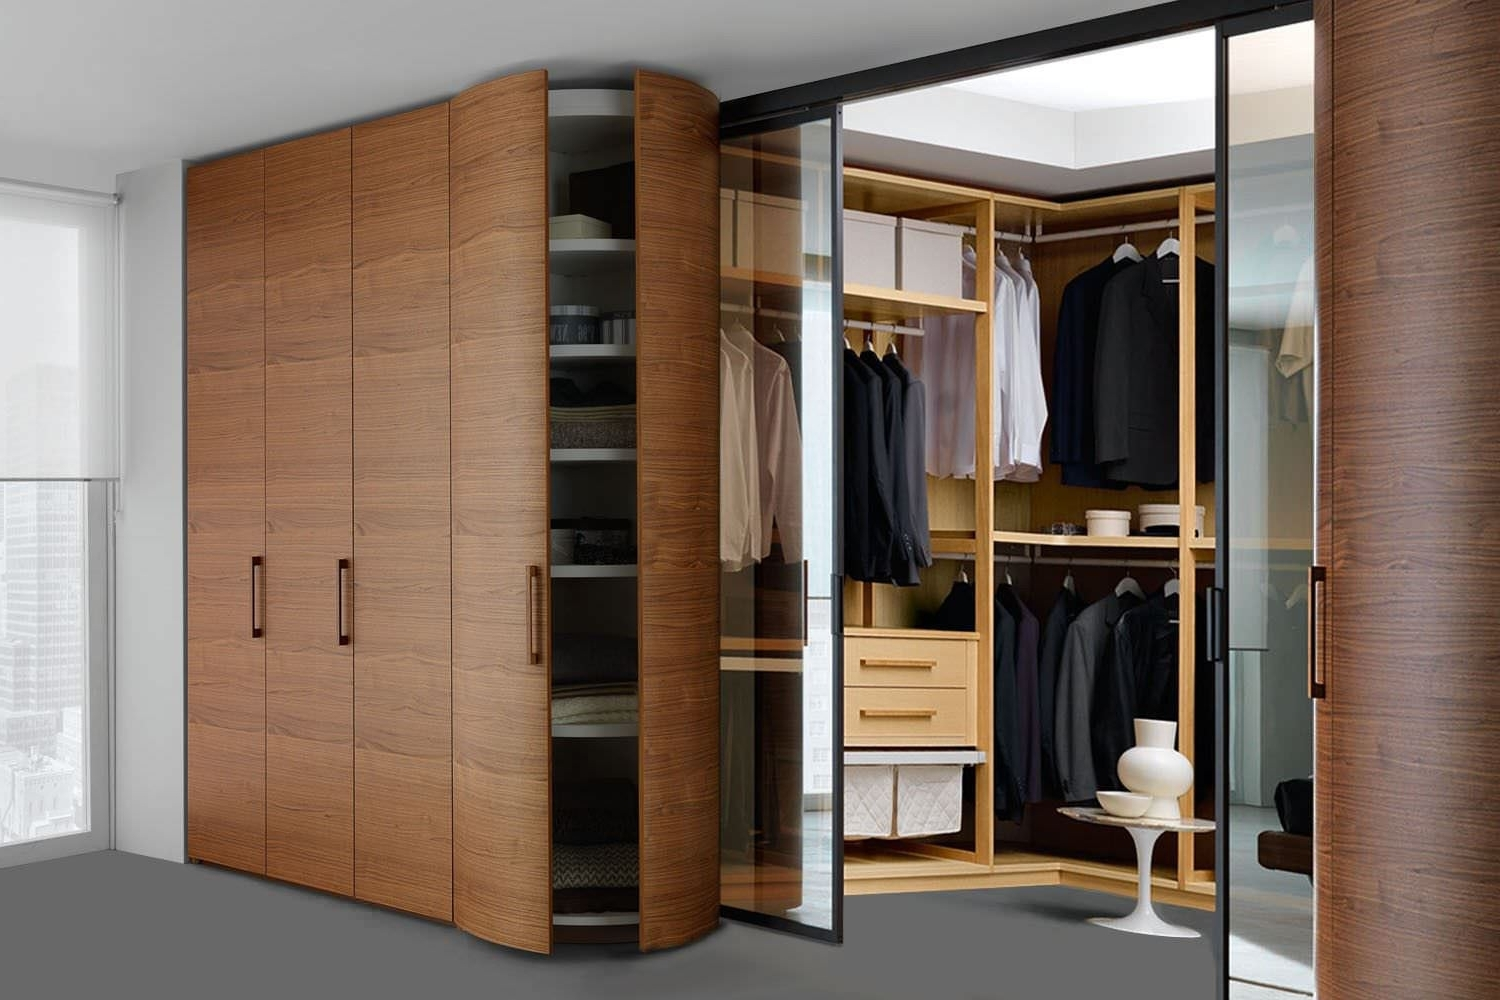 Corner Wardrobe / Contemporary / Wooden / Glossy Lacquered Wood Throughout Fashionable Curved Corner Wardrobes Doors (View 4 of 15)